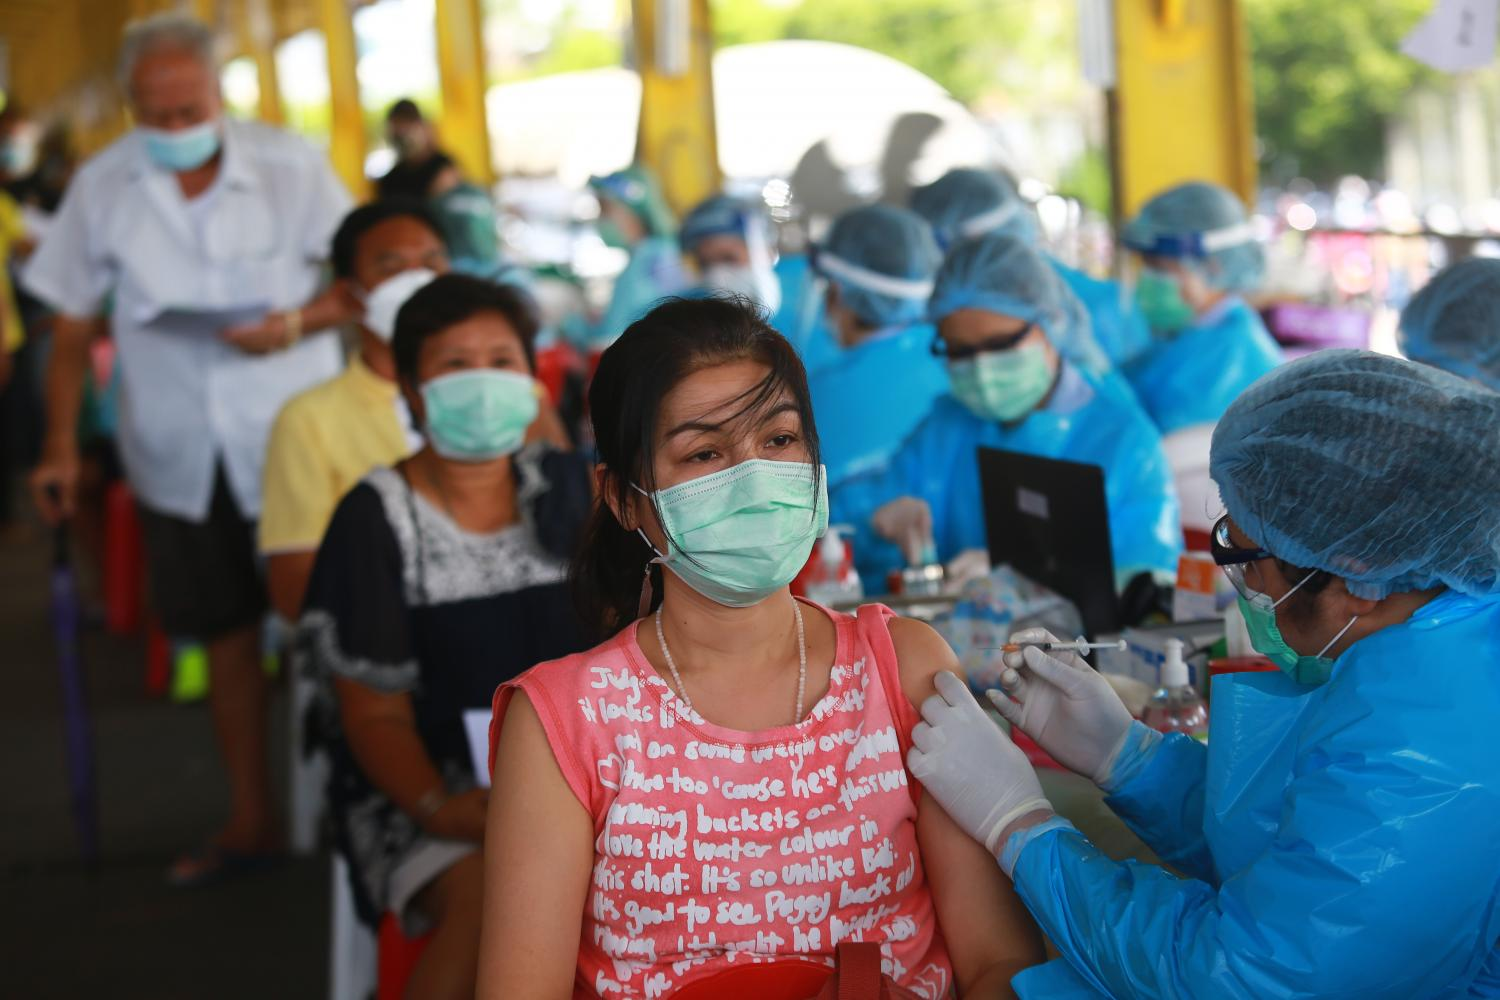 People in Klong Toey receive their second dose of Covid-19 vaccinations. Mr Supant stressed that the government must keep on speeding up vaccinations for people to build herd immunity.(Photo by Somchai Poomlard)